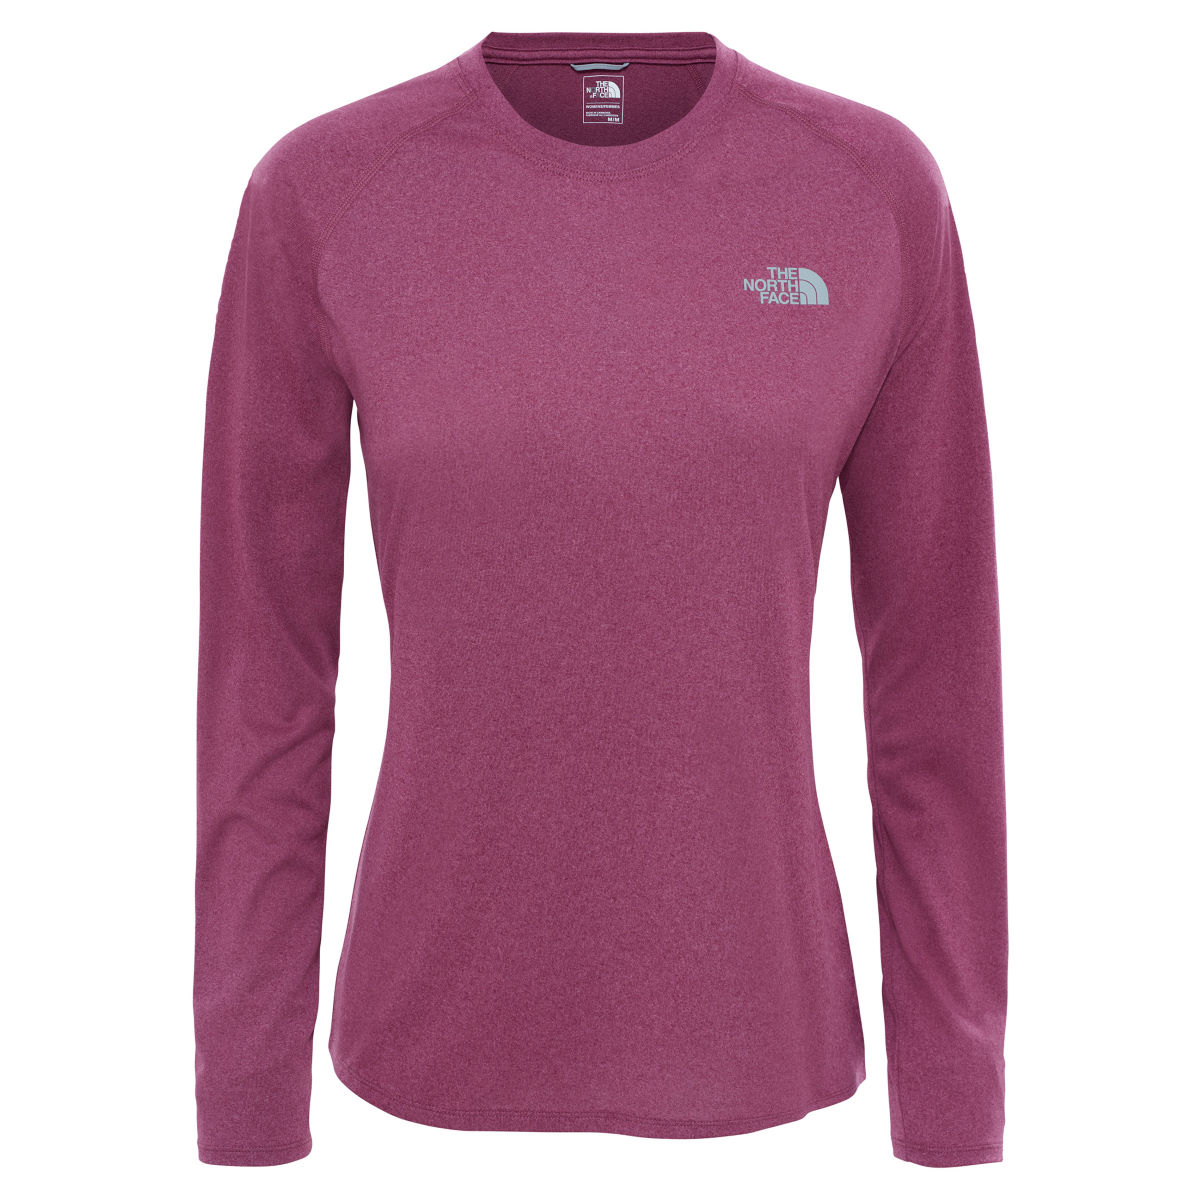 Maillot Femme The North Face Reaxion Amp (manches longues, col rond)